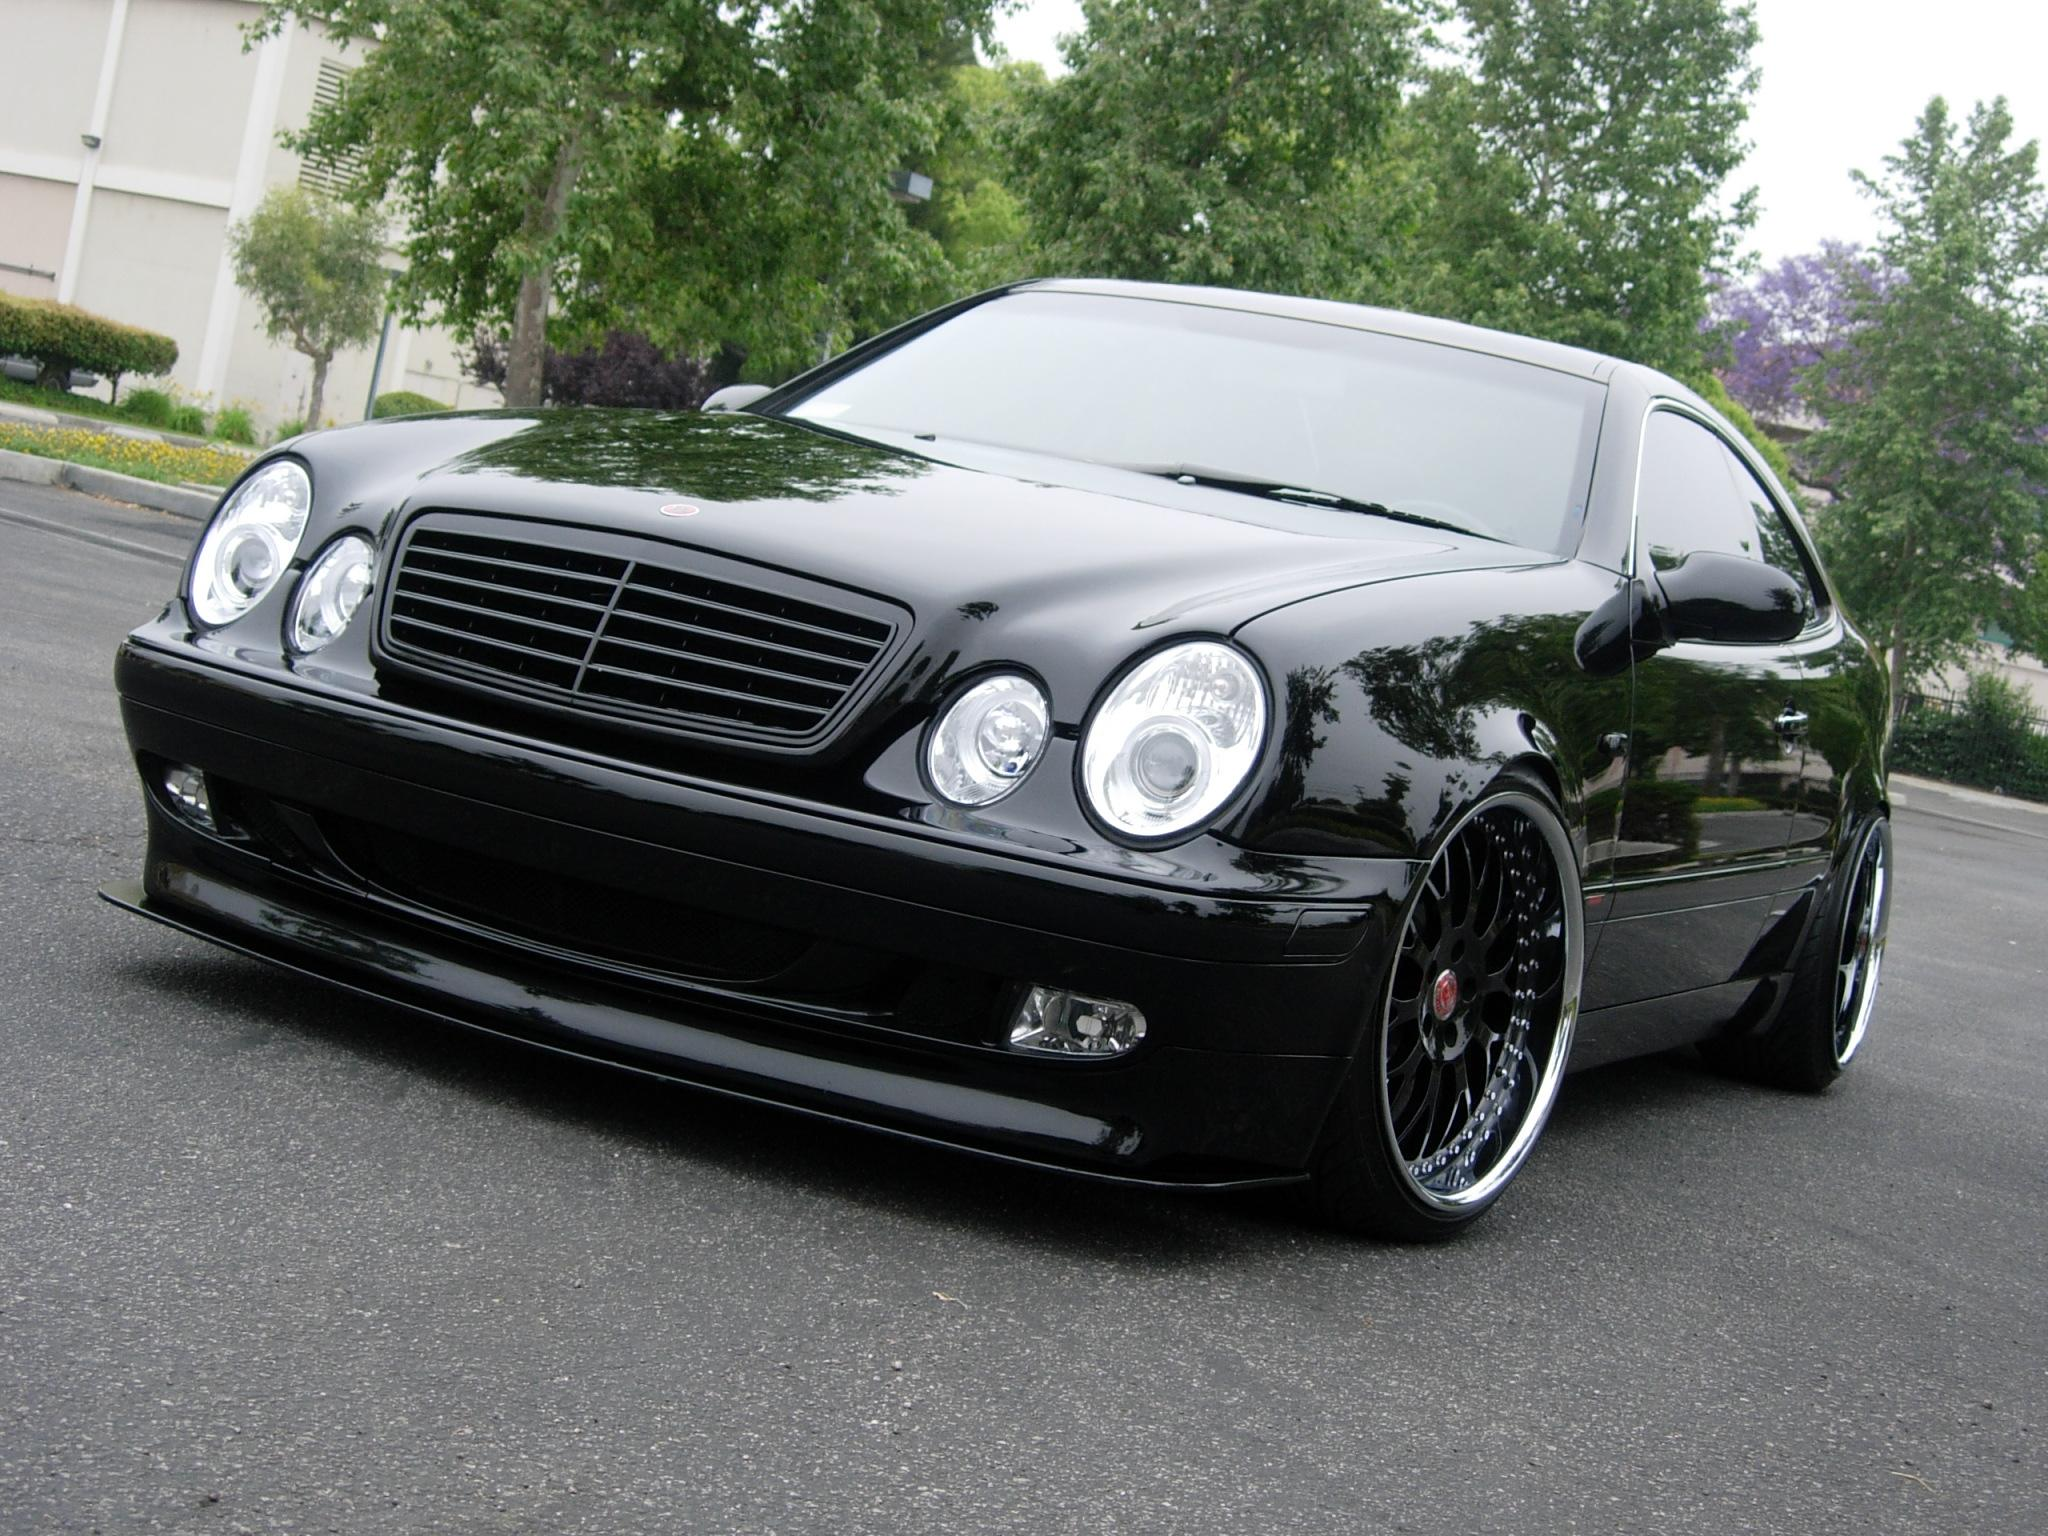 Clkfan 1999 mercedes benz clk class specs photos for B1 service mercedes benz